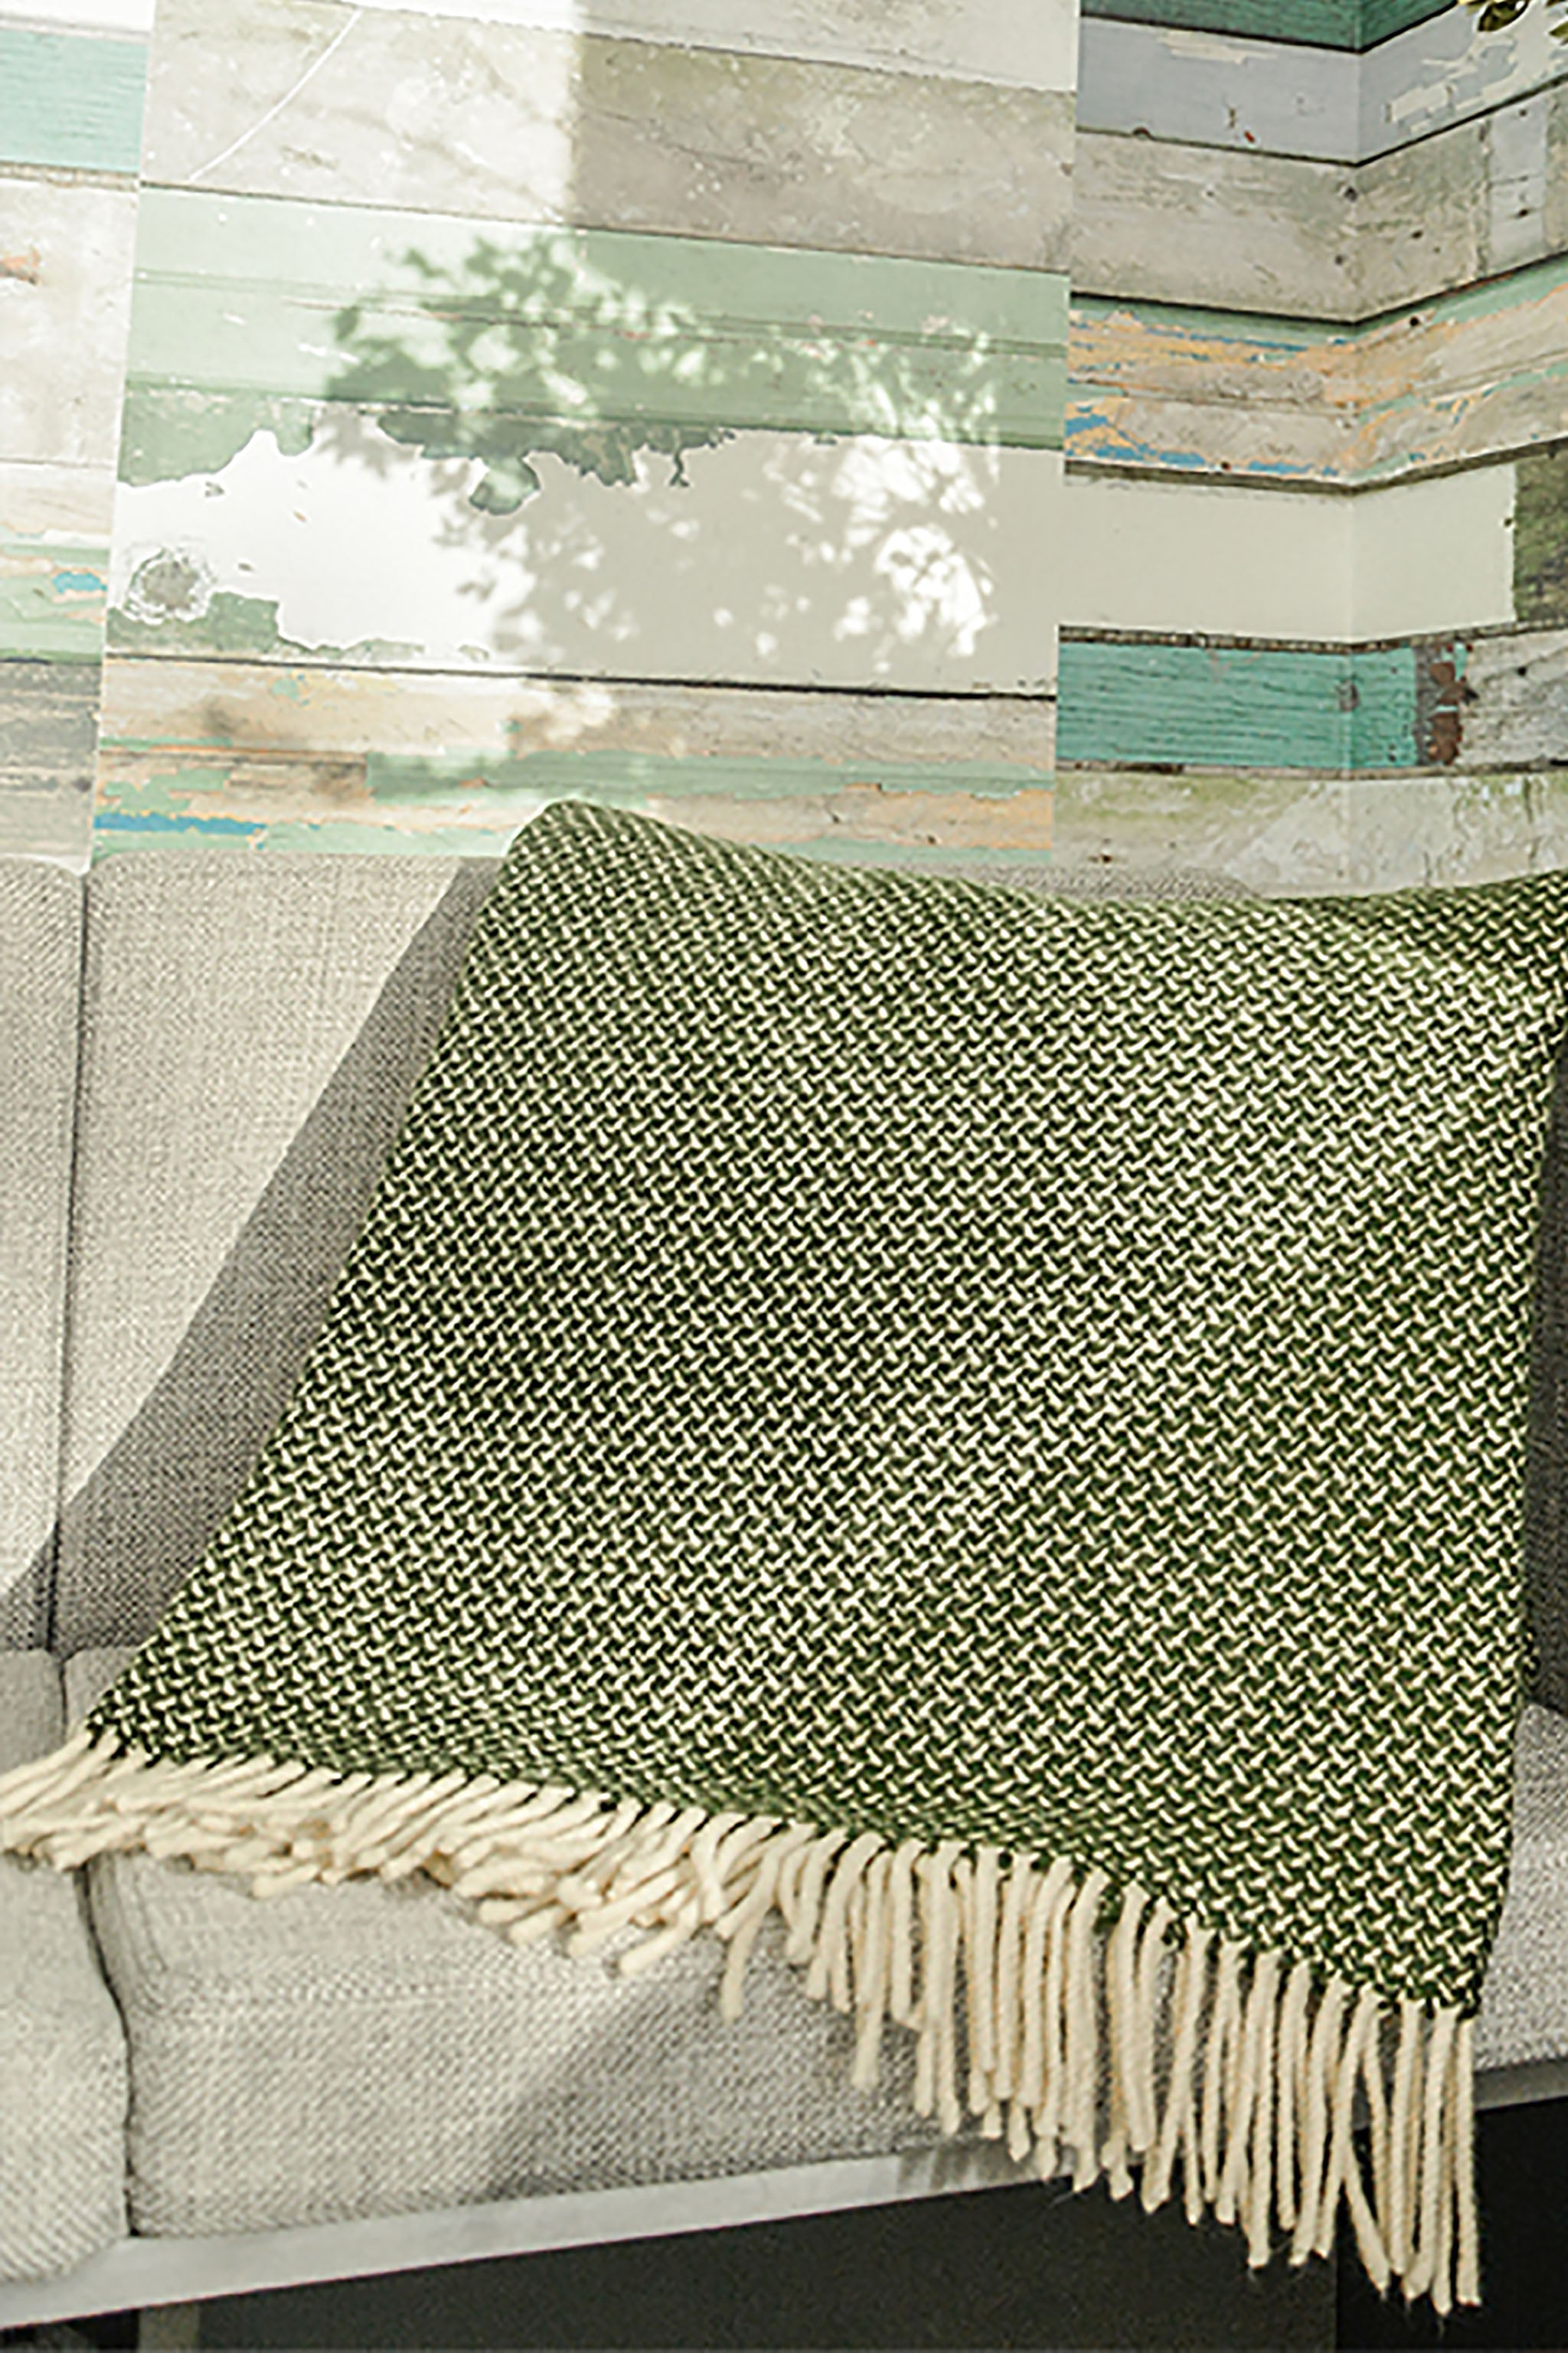 Dry green Merino wool throw with tight wing pattern and fringe folder over sofa